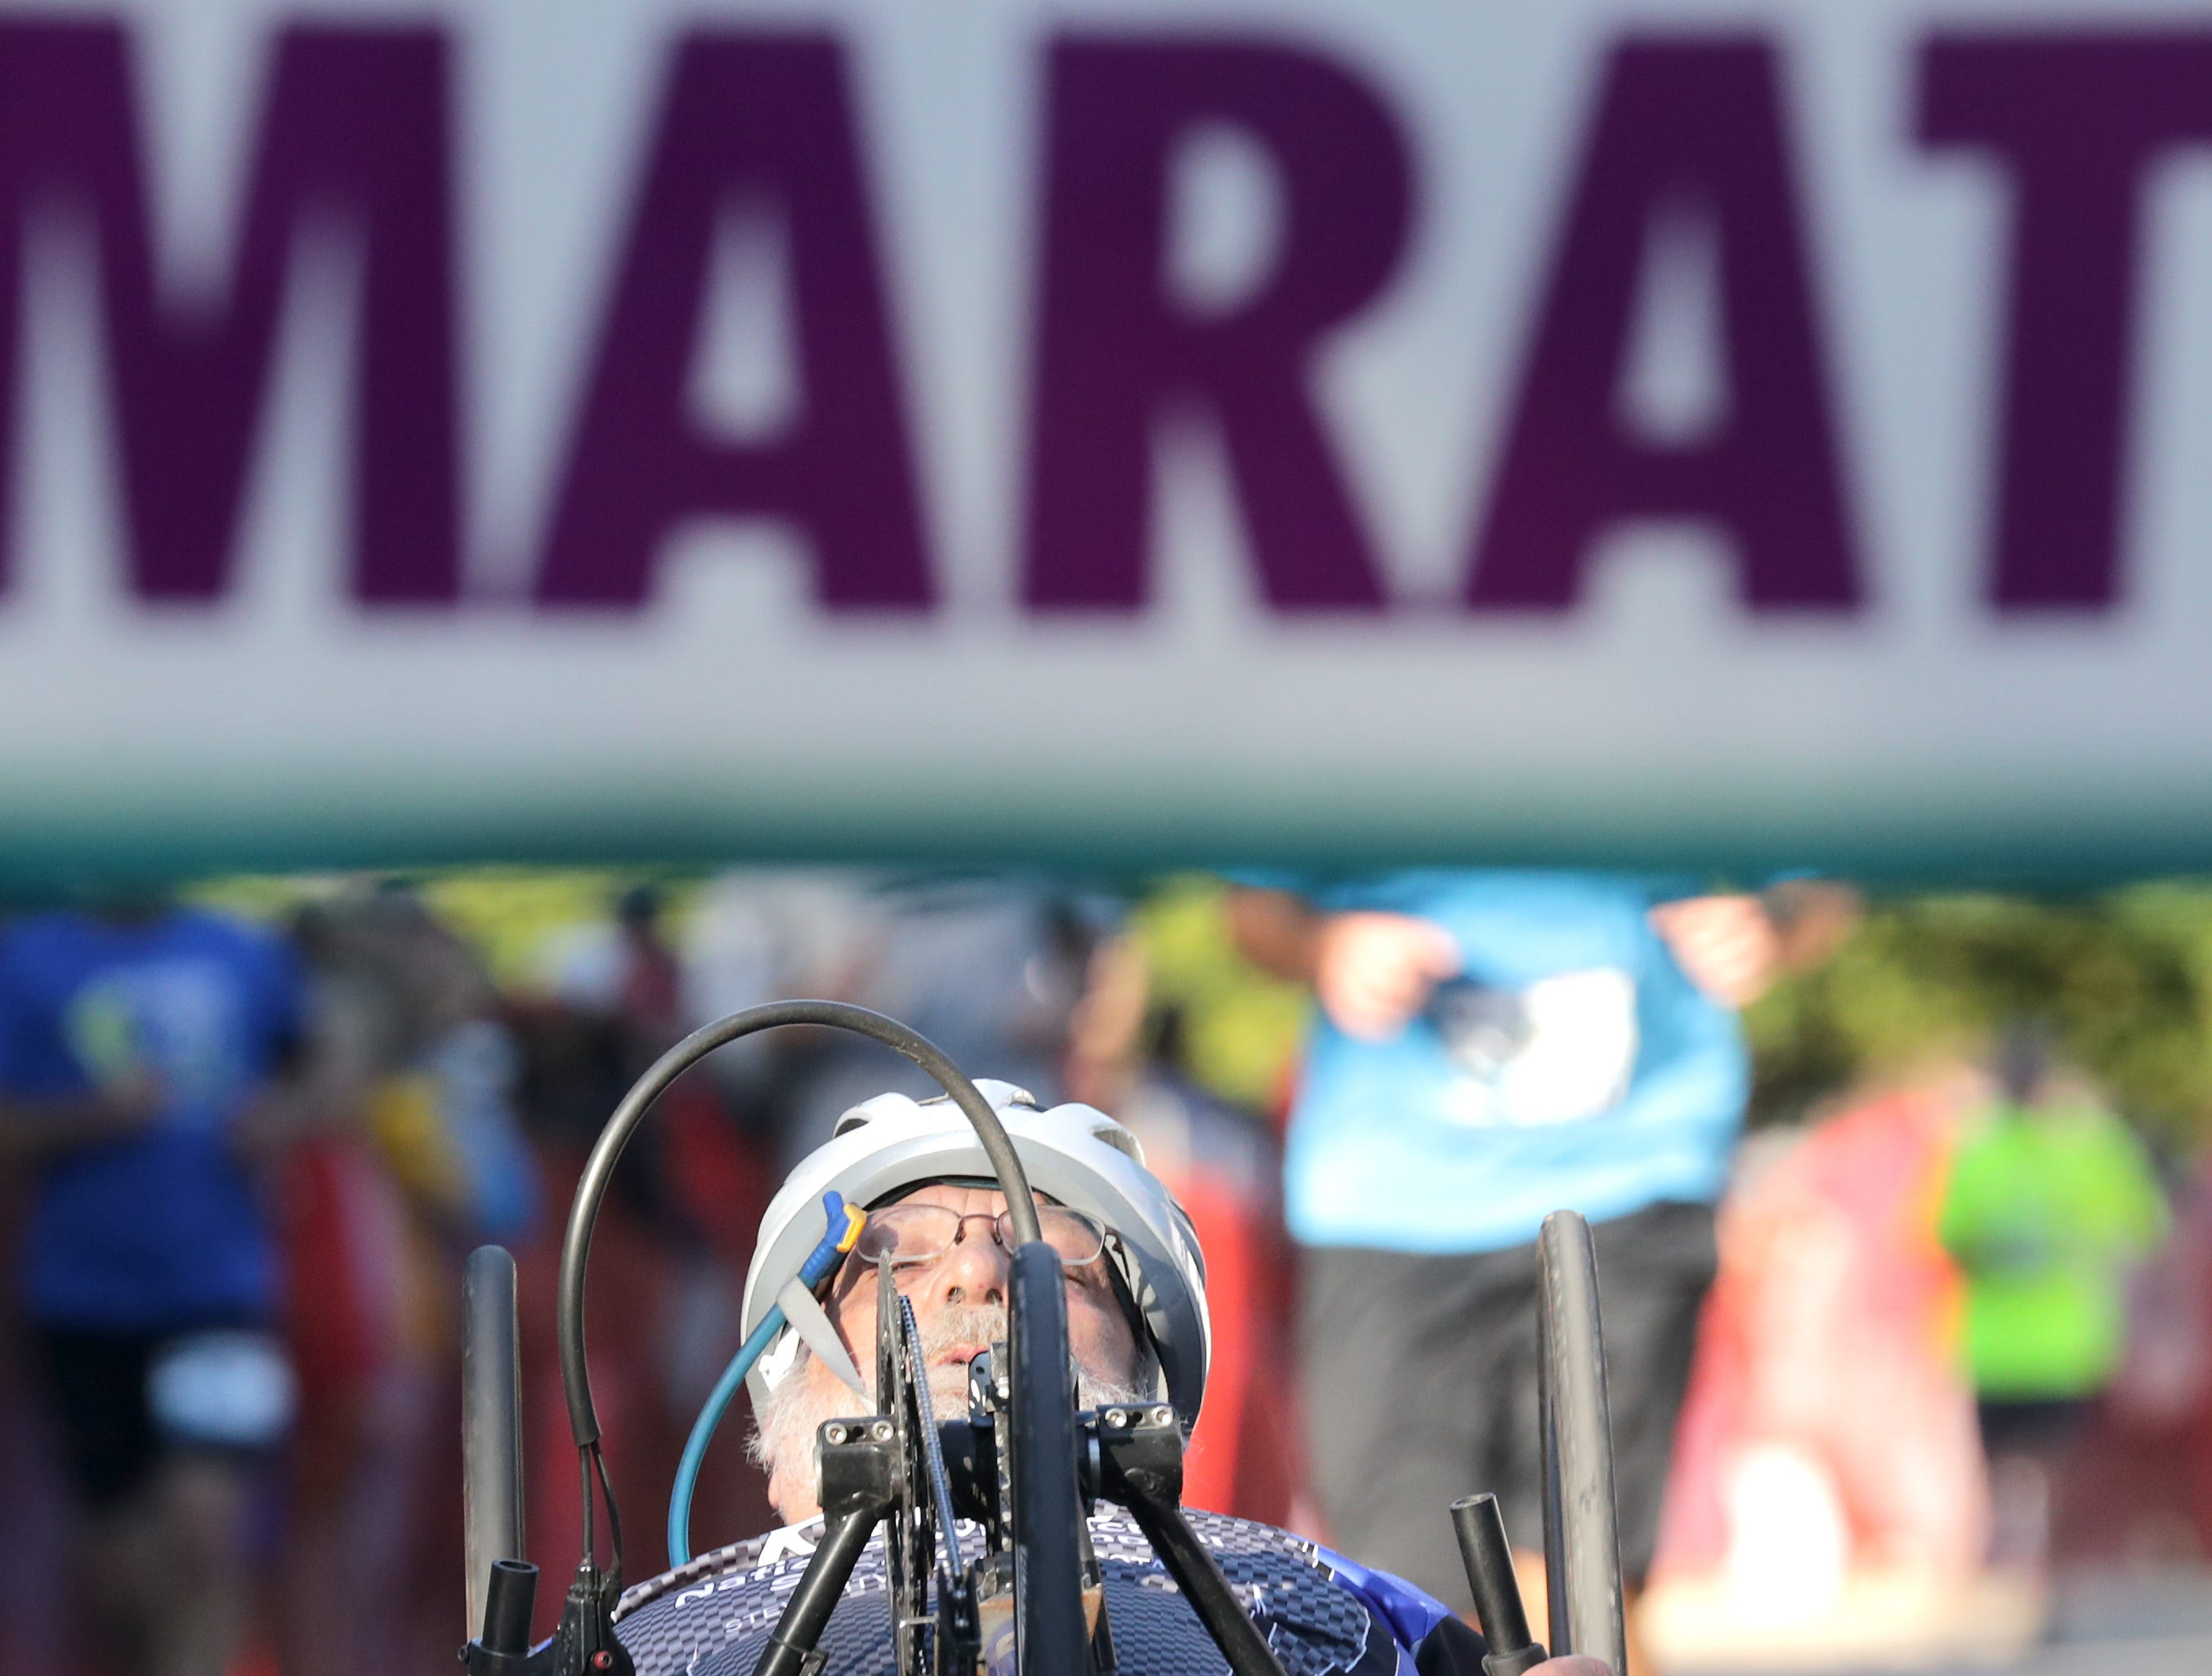 Ron Malik crosses the finish line wheel chair/ hand crank in the marathon event during the 28th annual Community First Fox Cities Marathon on Sunday, September 23, 2018, in Neenah Wis. Wm. Glasheen/USA TODAY NETWORK-Wisconsin.